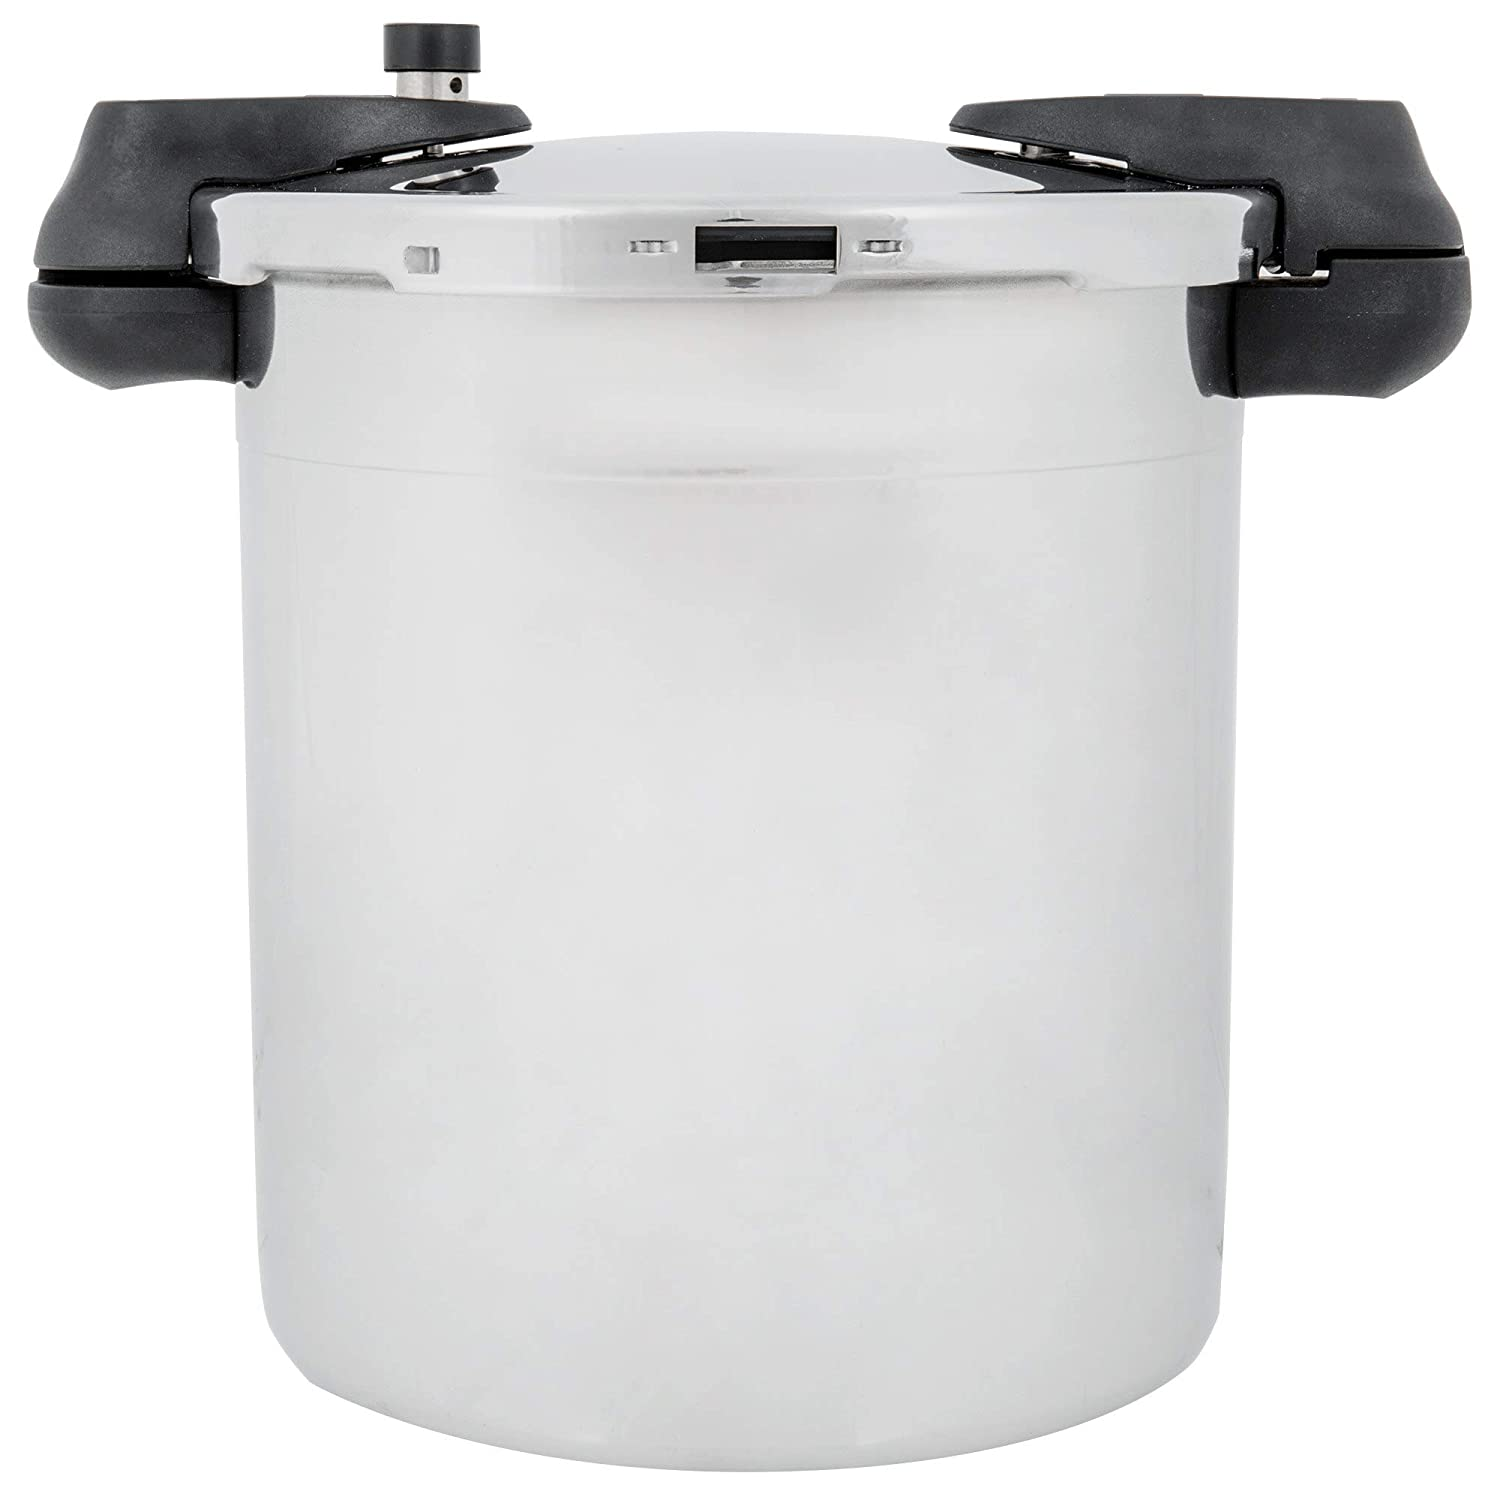 TableTop King 013320 56 Cup (28 Cup Raw) 14 Qt. (13 Liter) Stainless Steel Pressure Cooker